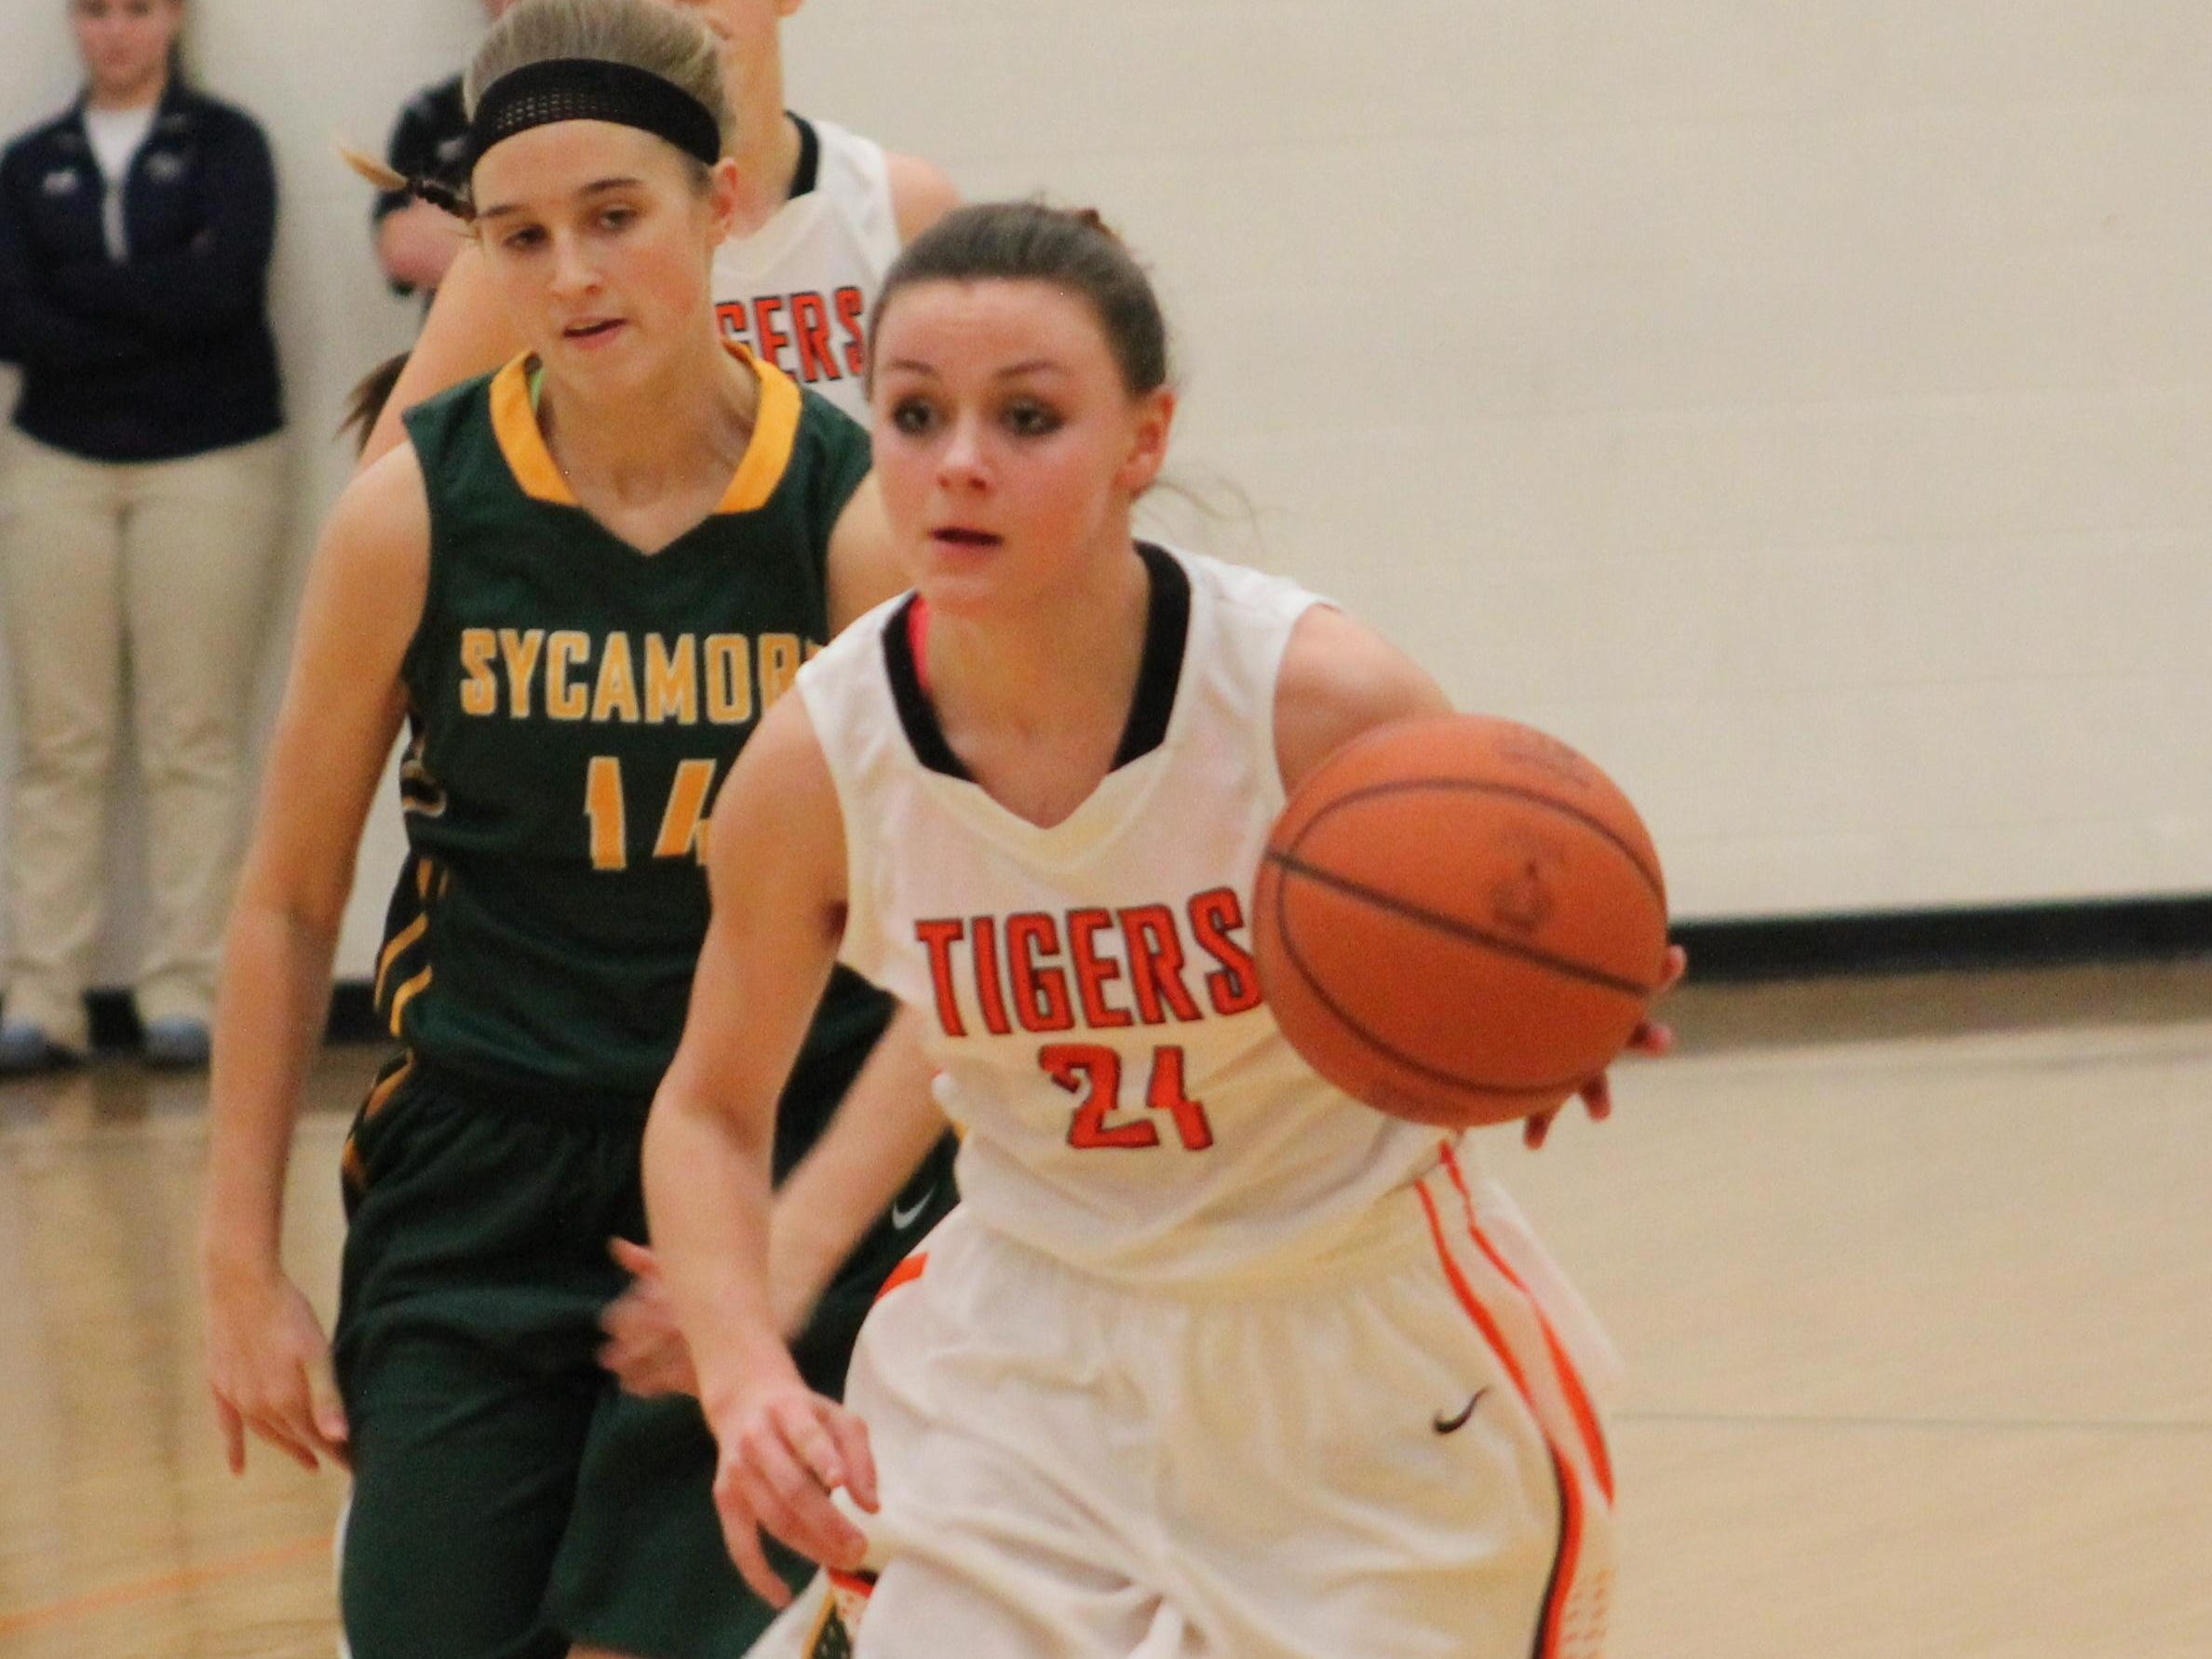 Sycamore's Kelsey Kandil chases Colleen Swift of Loveland last February.